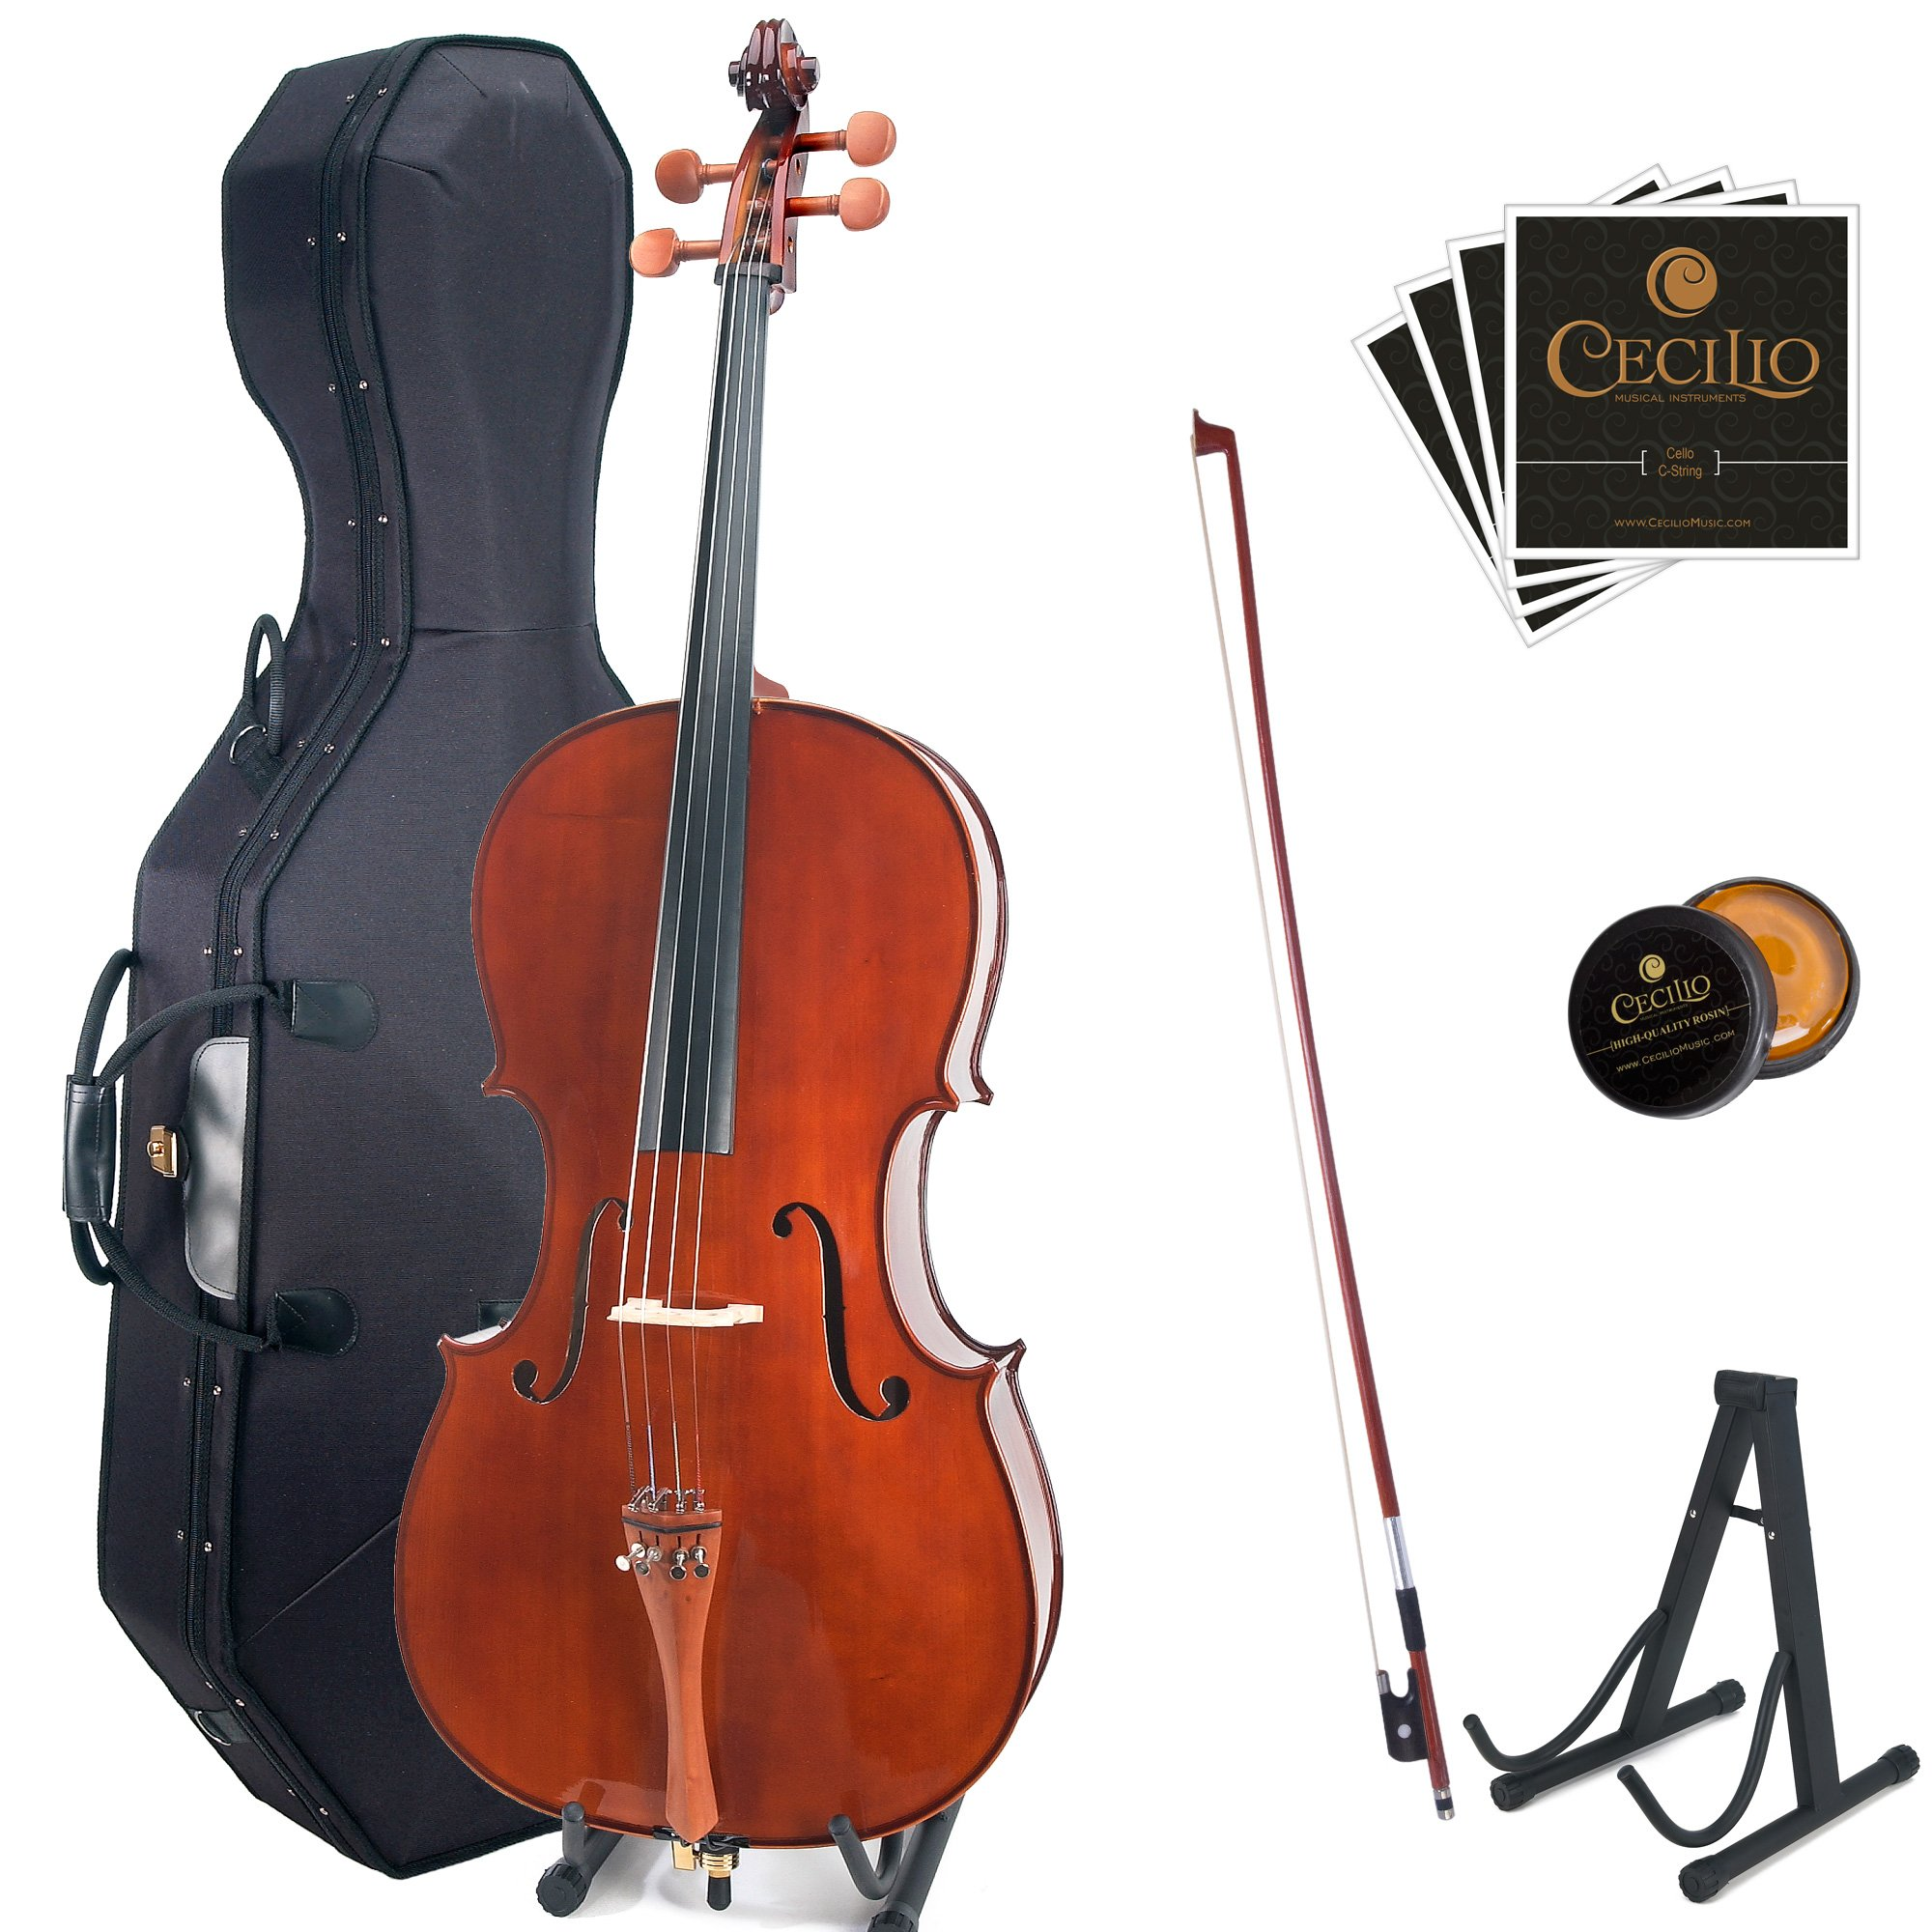 Cecilio CCO-300 Solid Wood Cello with Hard & Soft Case, Stand, Bow, Rosin, Bridge and Extra Set of Strings, Size 4/4 (Full Size) by Cecilio